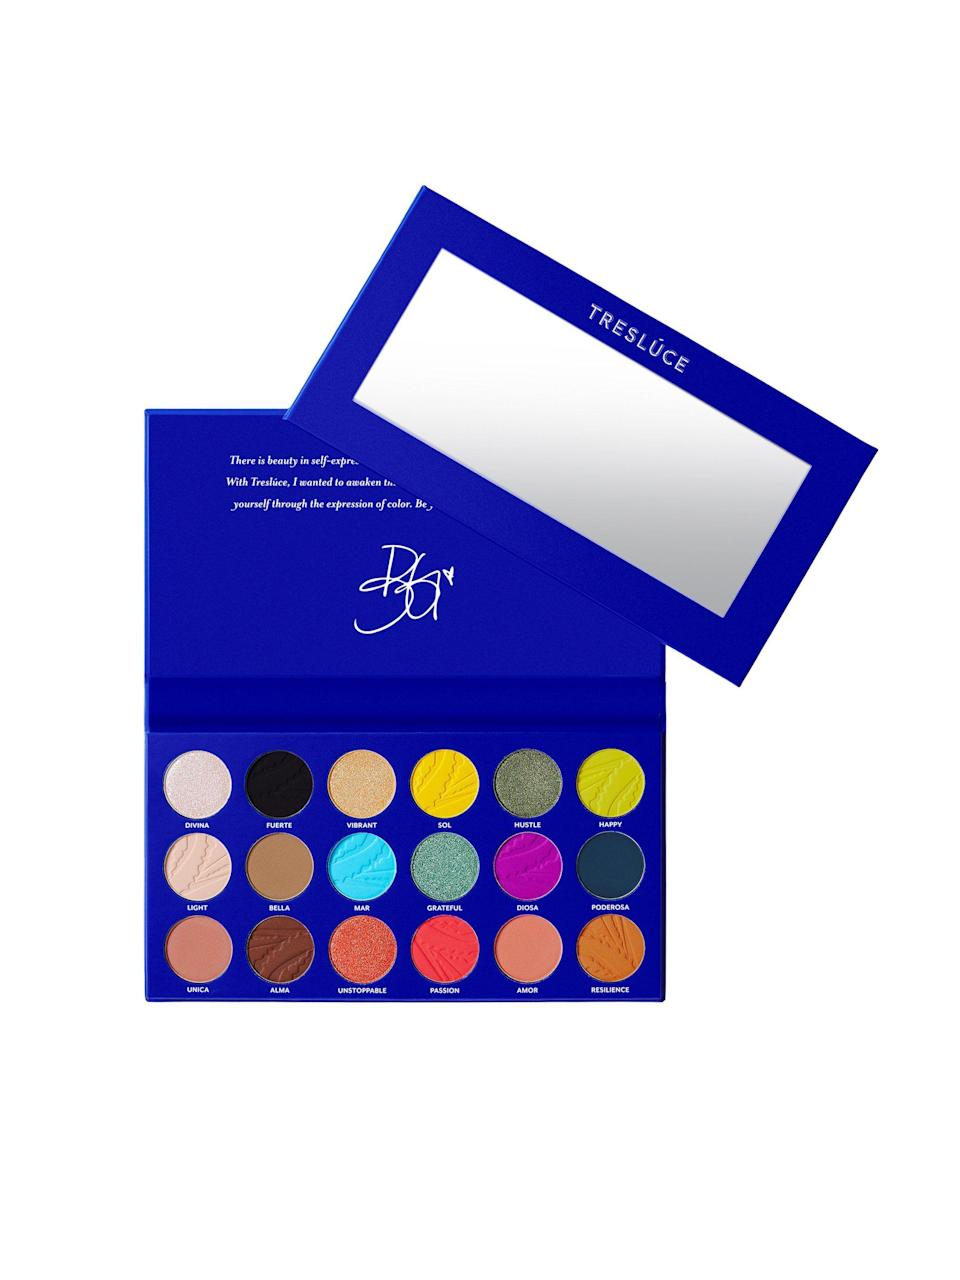 """<p><strong>I Am Eyeshadow Palette</strong></p><p>treslucebeauty.com</p><p><strong>$30.00</strong></p><p><a href=""""https://treslucebeauty.com/products/i-am-palette-shadow-palette"""" rel=""""nofollow noopener"""" target=""""_blank"""" data-ylk=""""slk:Shop Now"""" class=""""link rapid-noclick-resp"""">Shop Now</a></p><p>Founded by Mexican-American musician Becky G, Treslúce Beauty broke out onto the beauty scene earlier this year. Treslúce Beauty creates, celebrates, and supports Latinx heritage and culture through its products (which all have Spanglish names, by the way). Treslúce's products are cruelty-free and infused with Latinx sourced ingredients and art.</p>"""